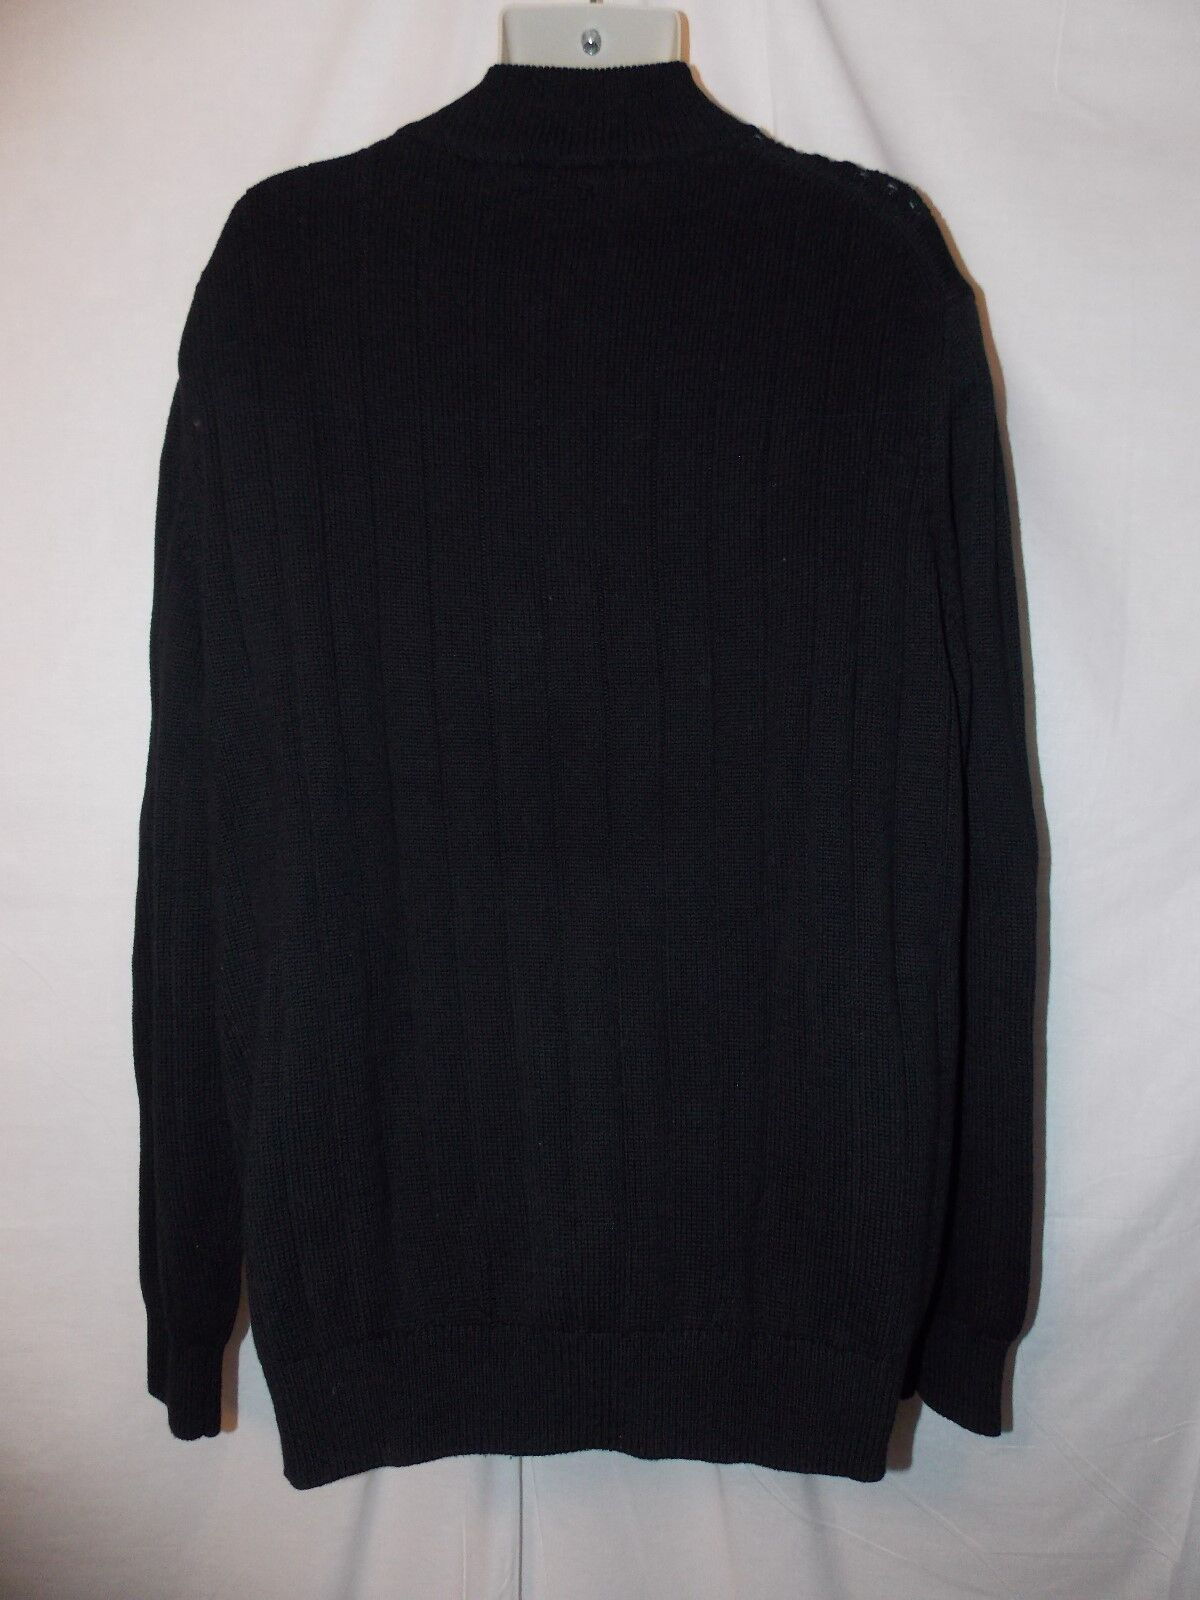 IZOD LT Mens Heavy 1/4 Zip Neck Cotton Cable Knit Black Sweater ...